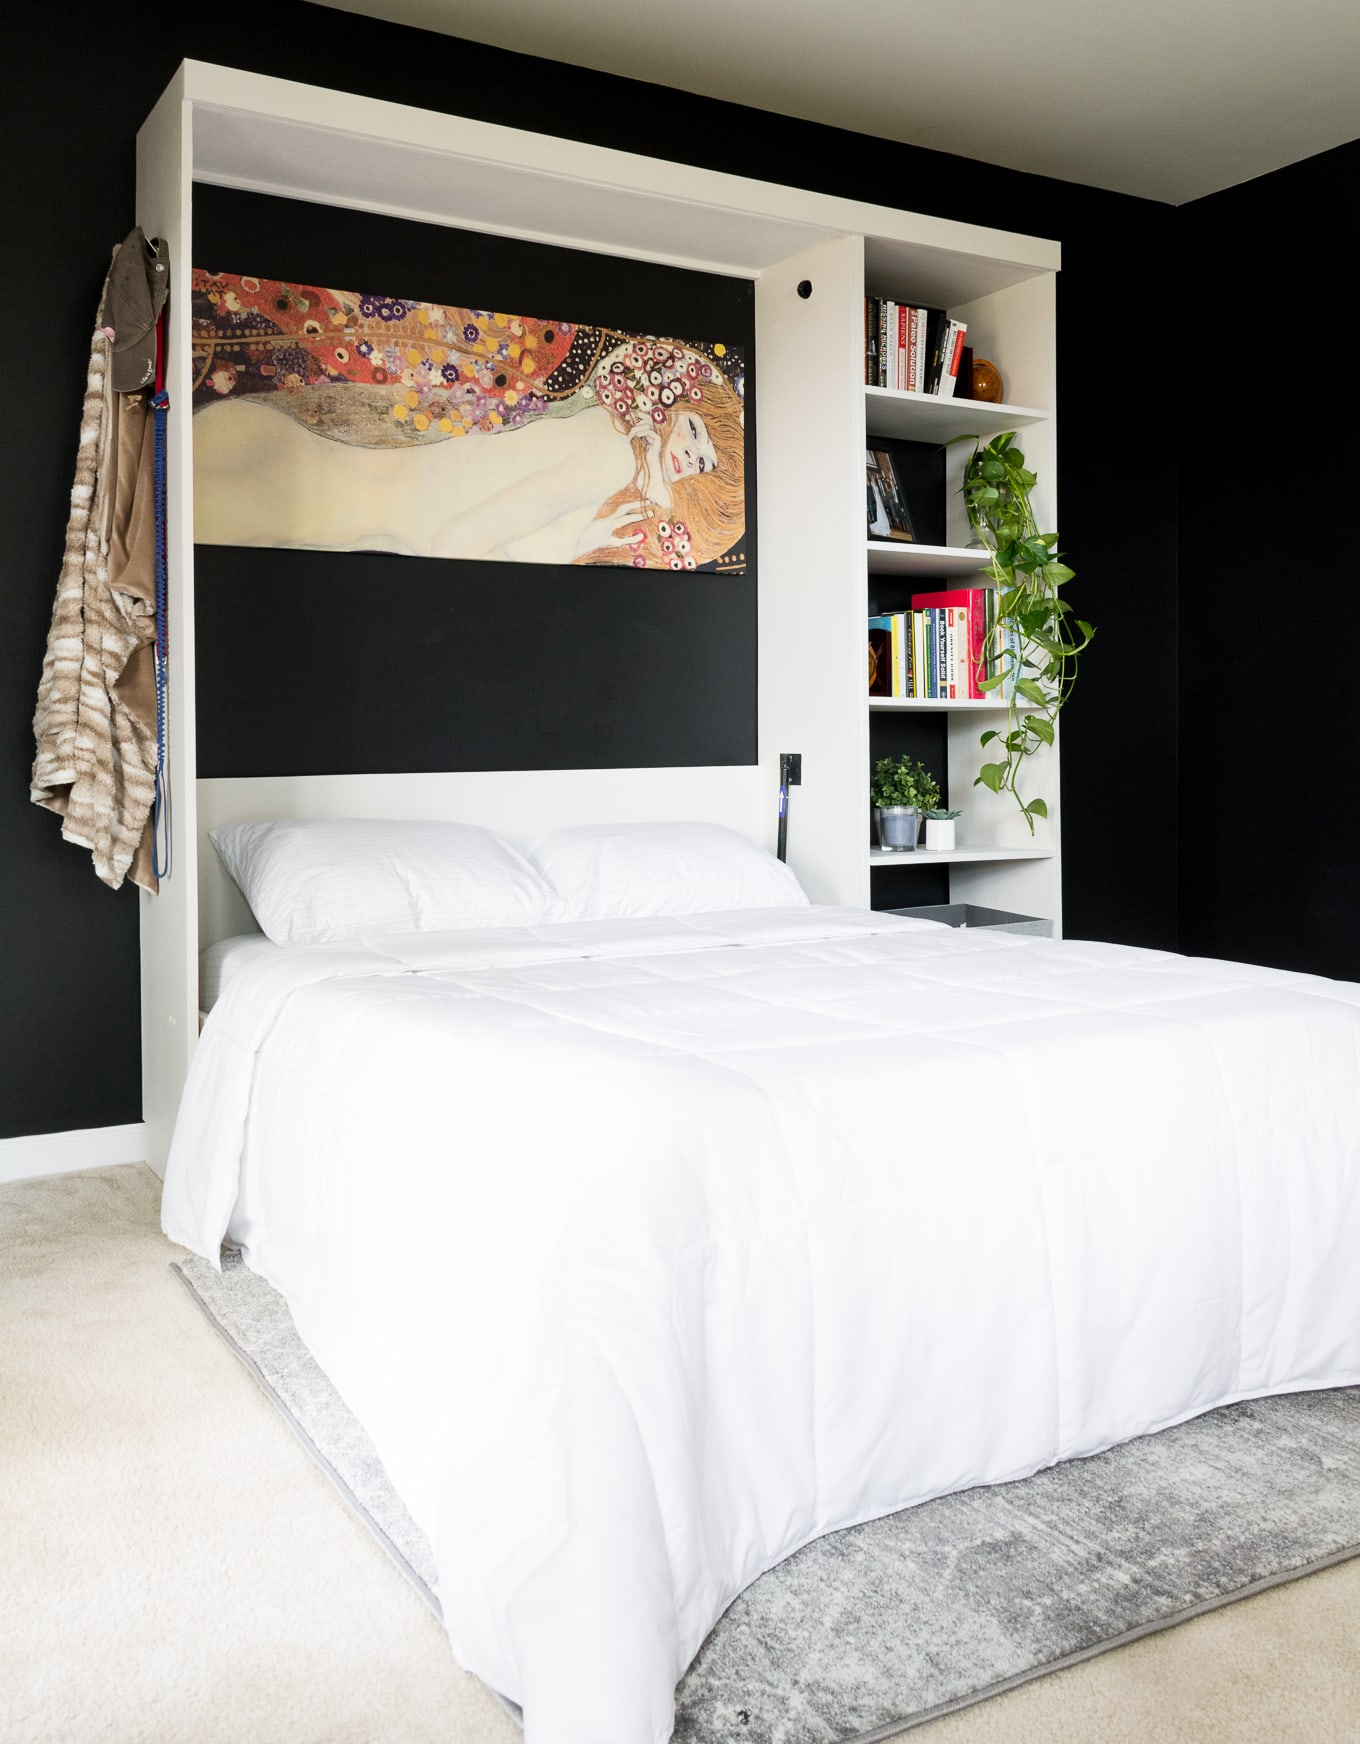 Modern-style DIY murphy bed // Sherwin-Williams Basalt Powder // Sherwin-Williams Tricorn Black // Office Guest Bedroom combo // DIY Murphy Bed kit // DIY Murphy bed build plans